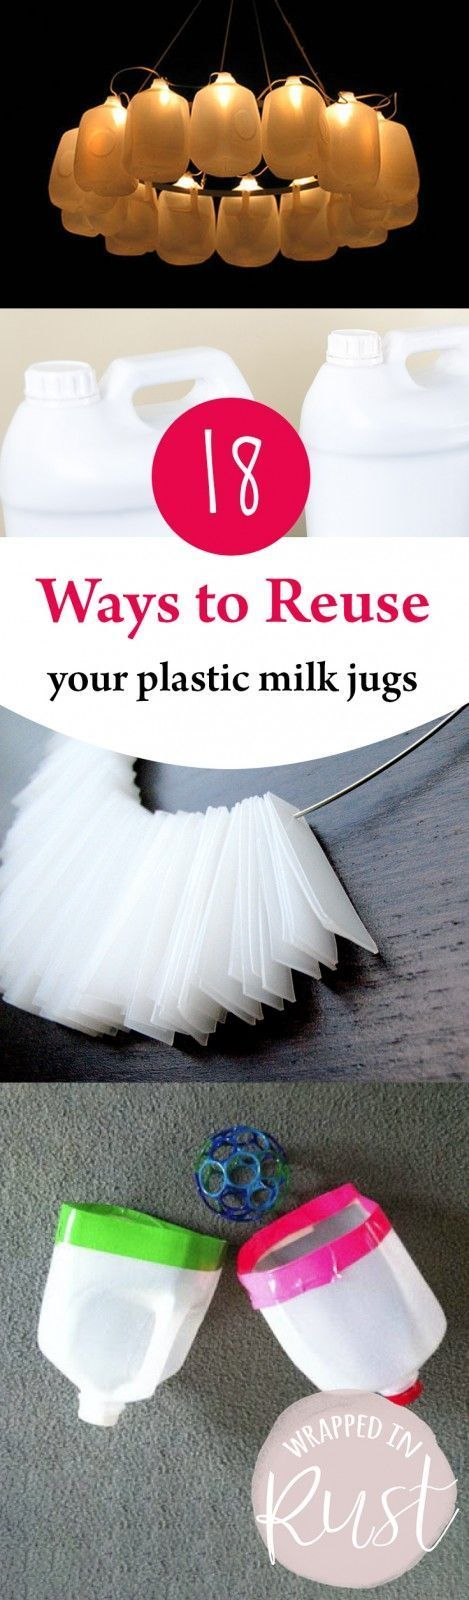 18 Ways to Reuse Your Plastic Milk Jugs #plasticjugs How to Reuse Plastic Milk Jugs, Plastic Milk Jugs, Things to Do With Plastic Milk Jugs, Repurposing Milk Jugs, Things to Do With Milk Jugs, Popular Pin, How to Repurpose Plastic Jugs. #plasticjugs 18 Ways to Reuse Your Plastic Milk Jugs #plasticjugs How to Reuse Plastic Milk Jugs, Plastic Milk Jugs, Things to Do With Plastic Milk Jugs, Repurposing Milk Jugs, Things to Do With Milk Jugs, Popular Pin, How to Repurpose Plastic Jugs. #plasticjugs